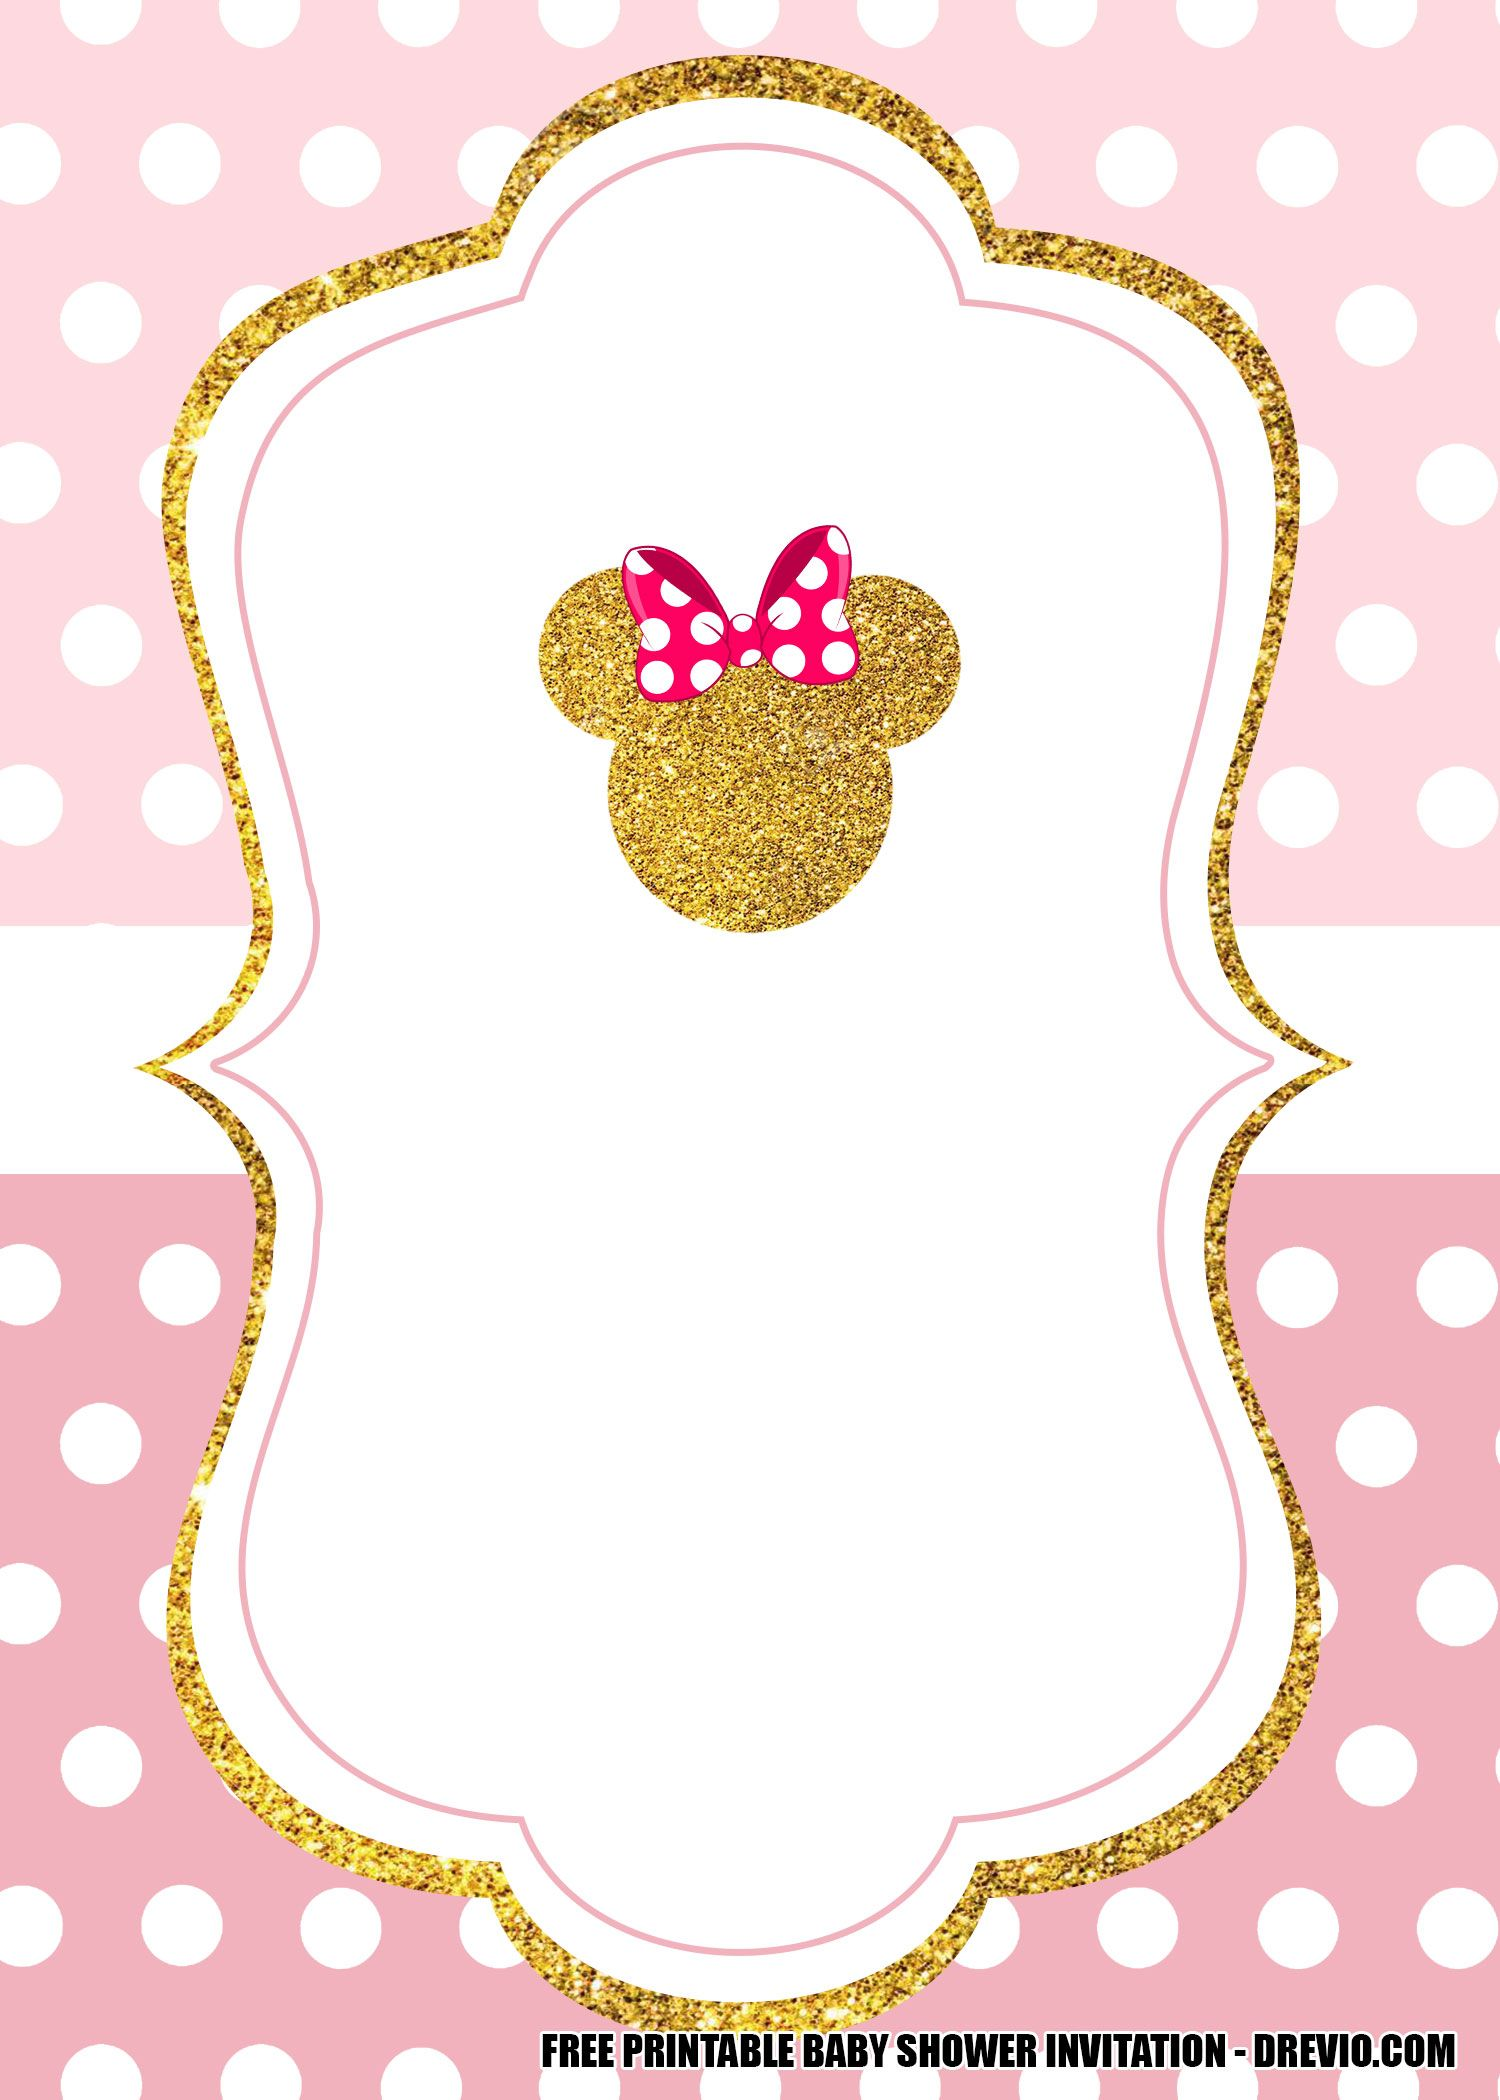 Free Minnie Mouse Pink And Gold Invitation Templates Minnie Mouse Birthday Invitations Pink And Gold Invitations Minnie Mouse Invitations